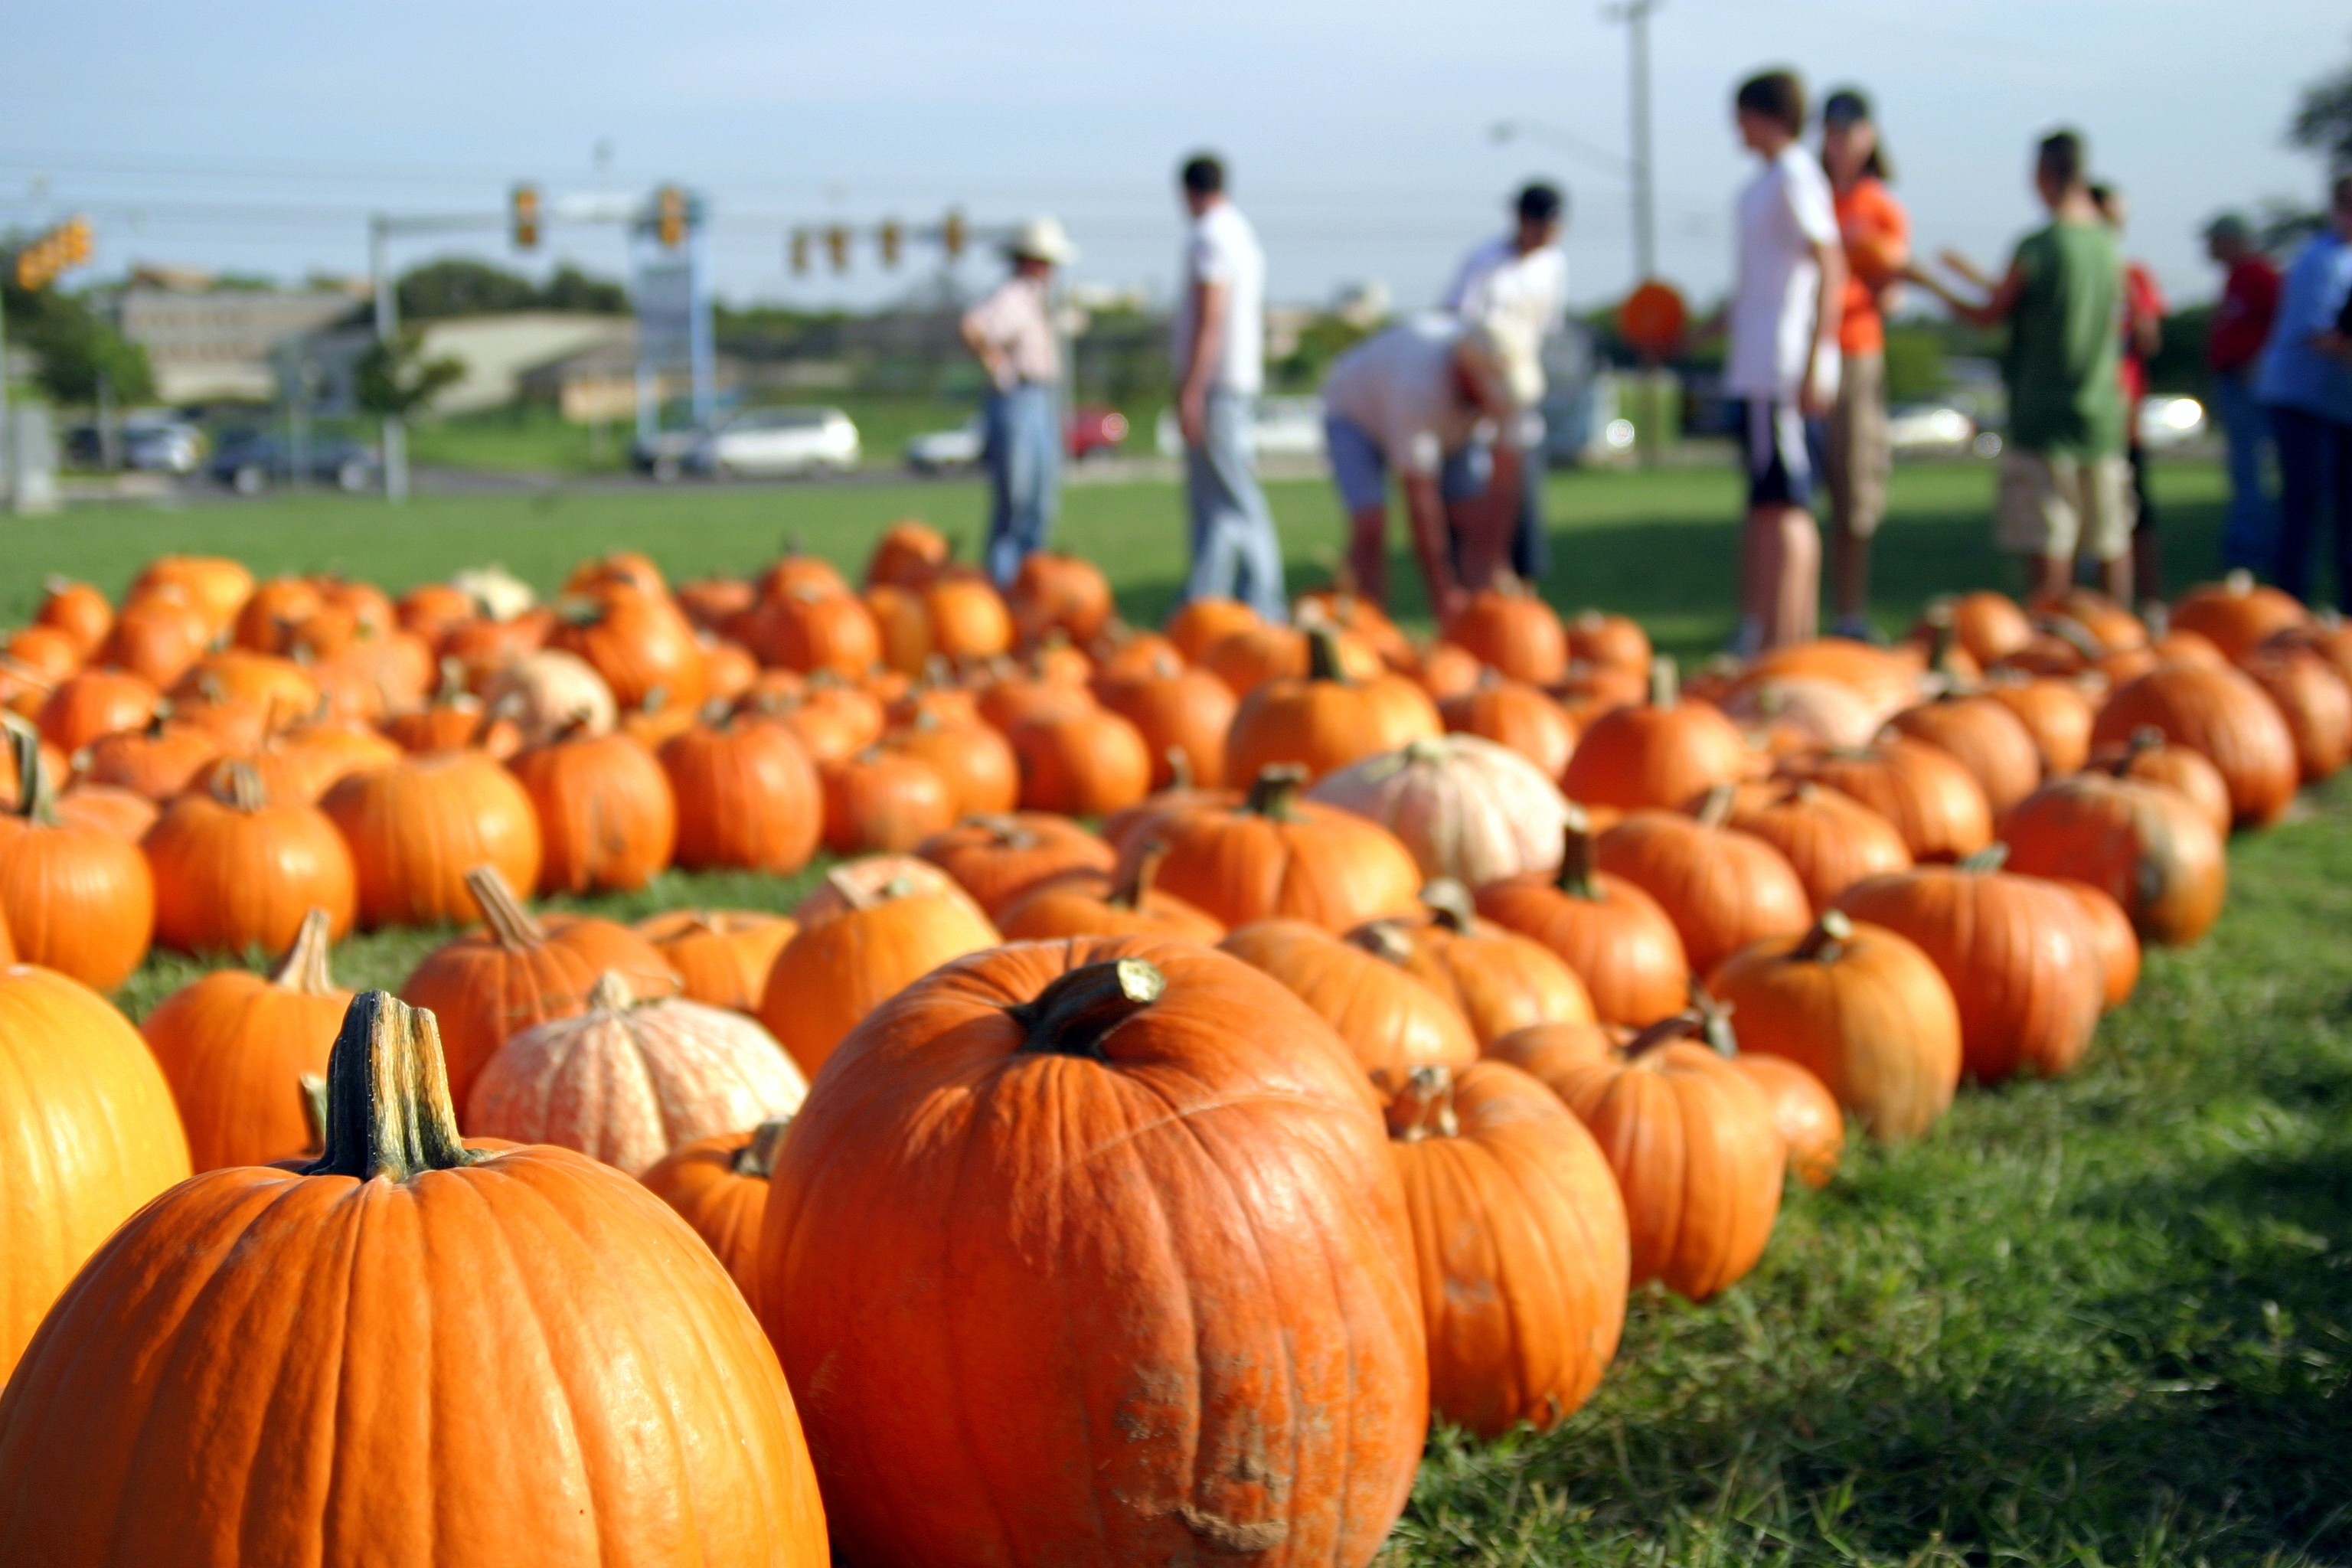 7 Fun And Affordable Fall Activities To Do This Weekend